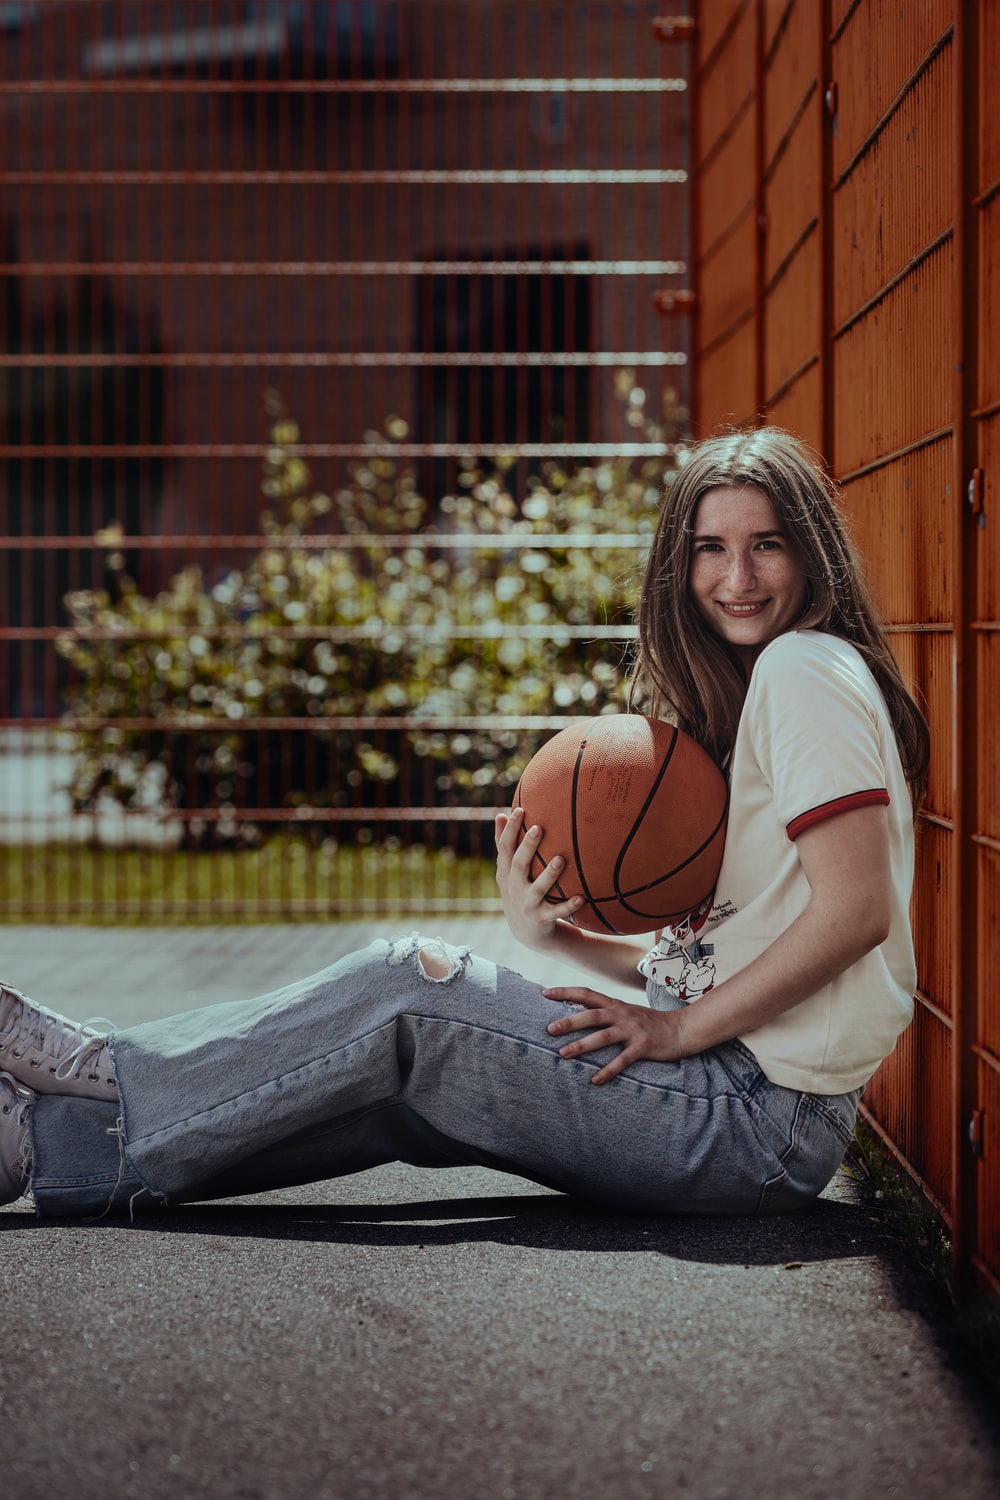 woman in white t-shirt and blue denim jeans sitting on basketball court